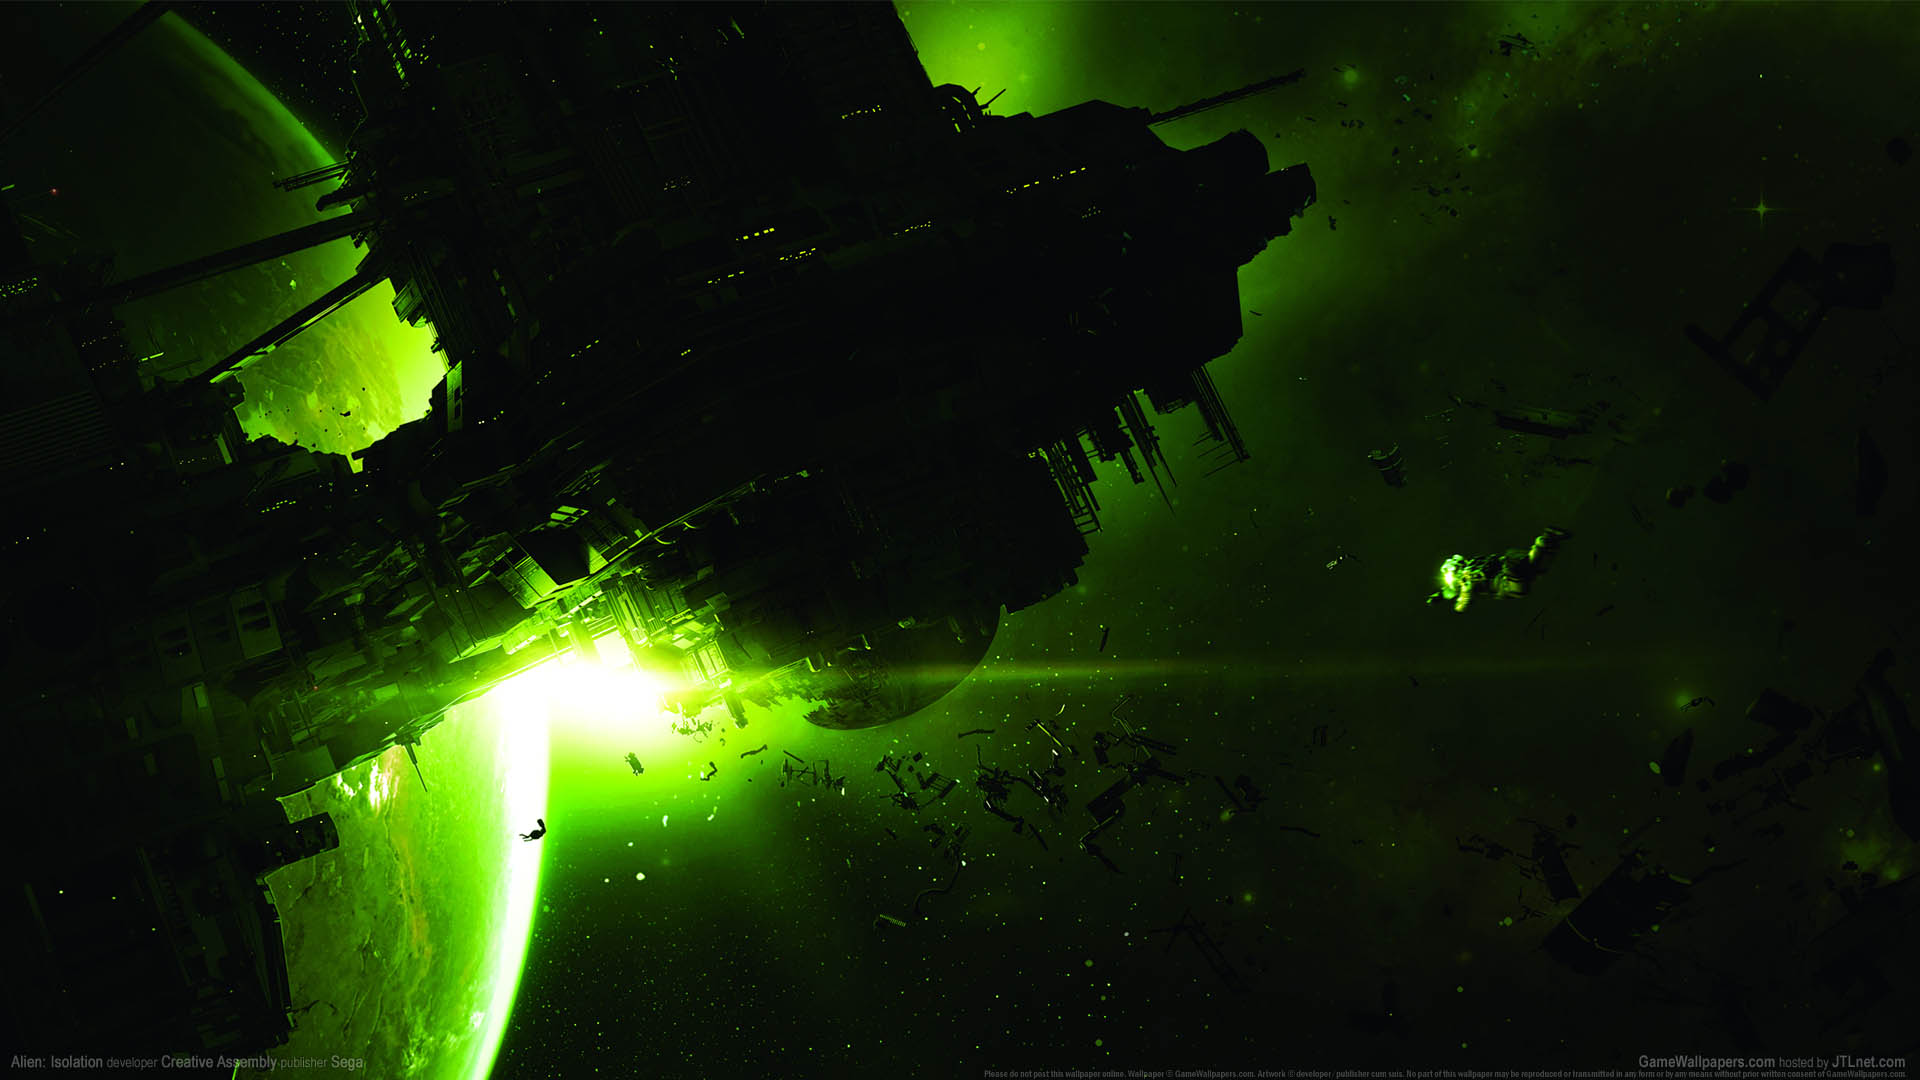 Alien-Isolation-1920x1080-wallpaper-wp3802287